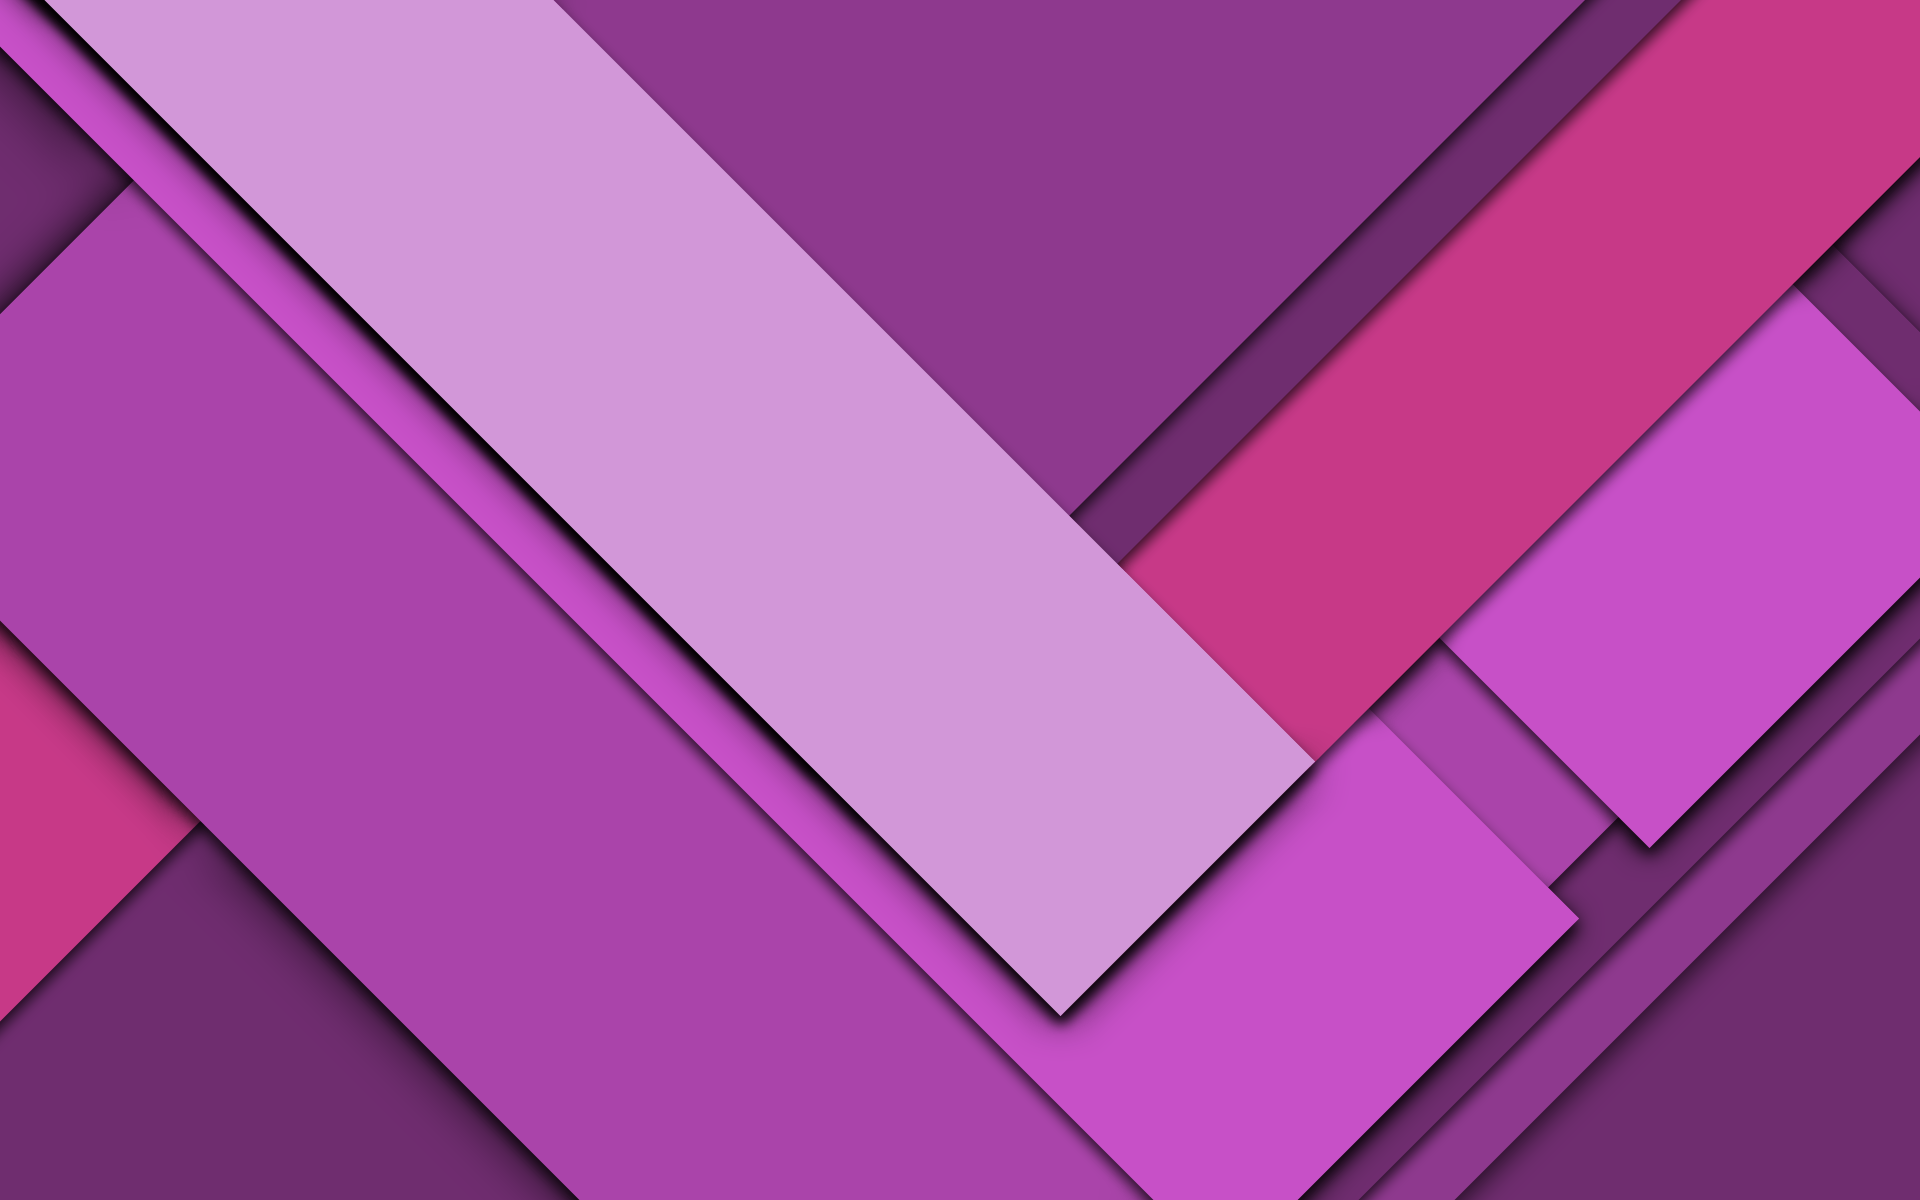 Paper Color Material Design